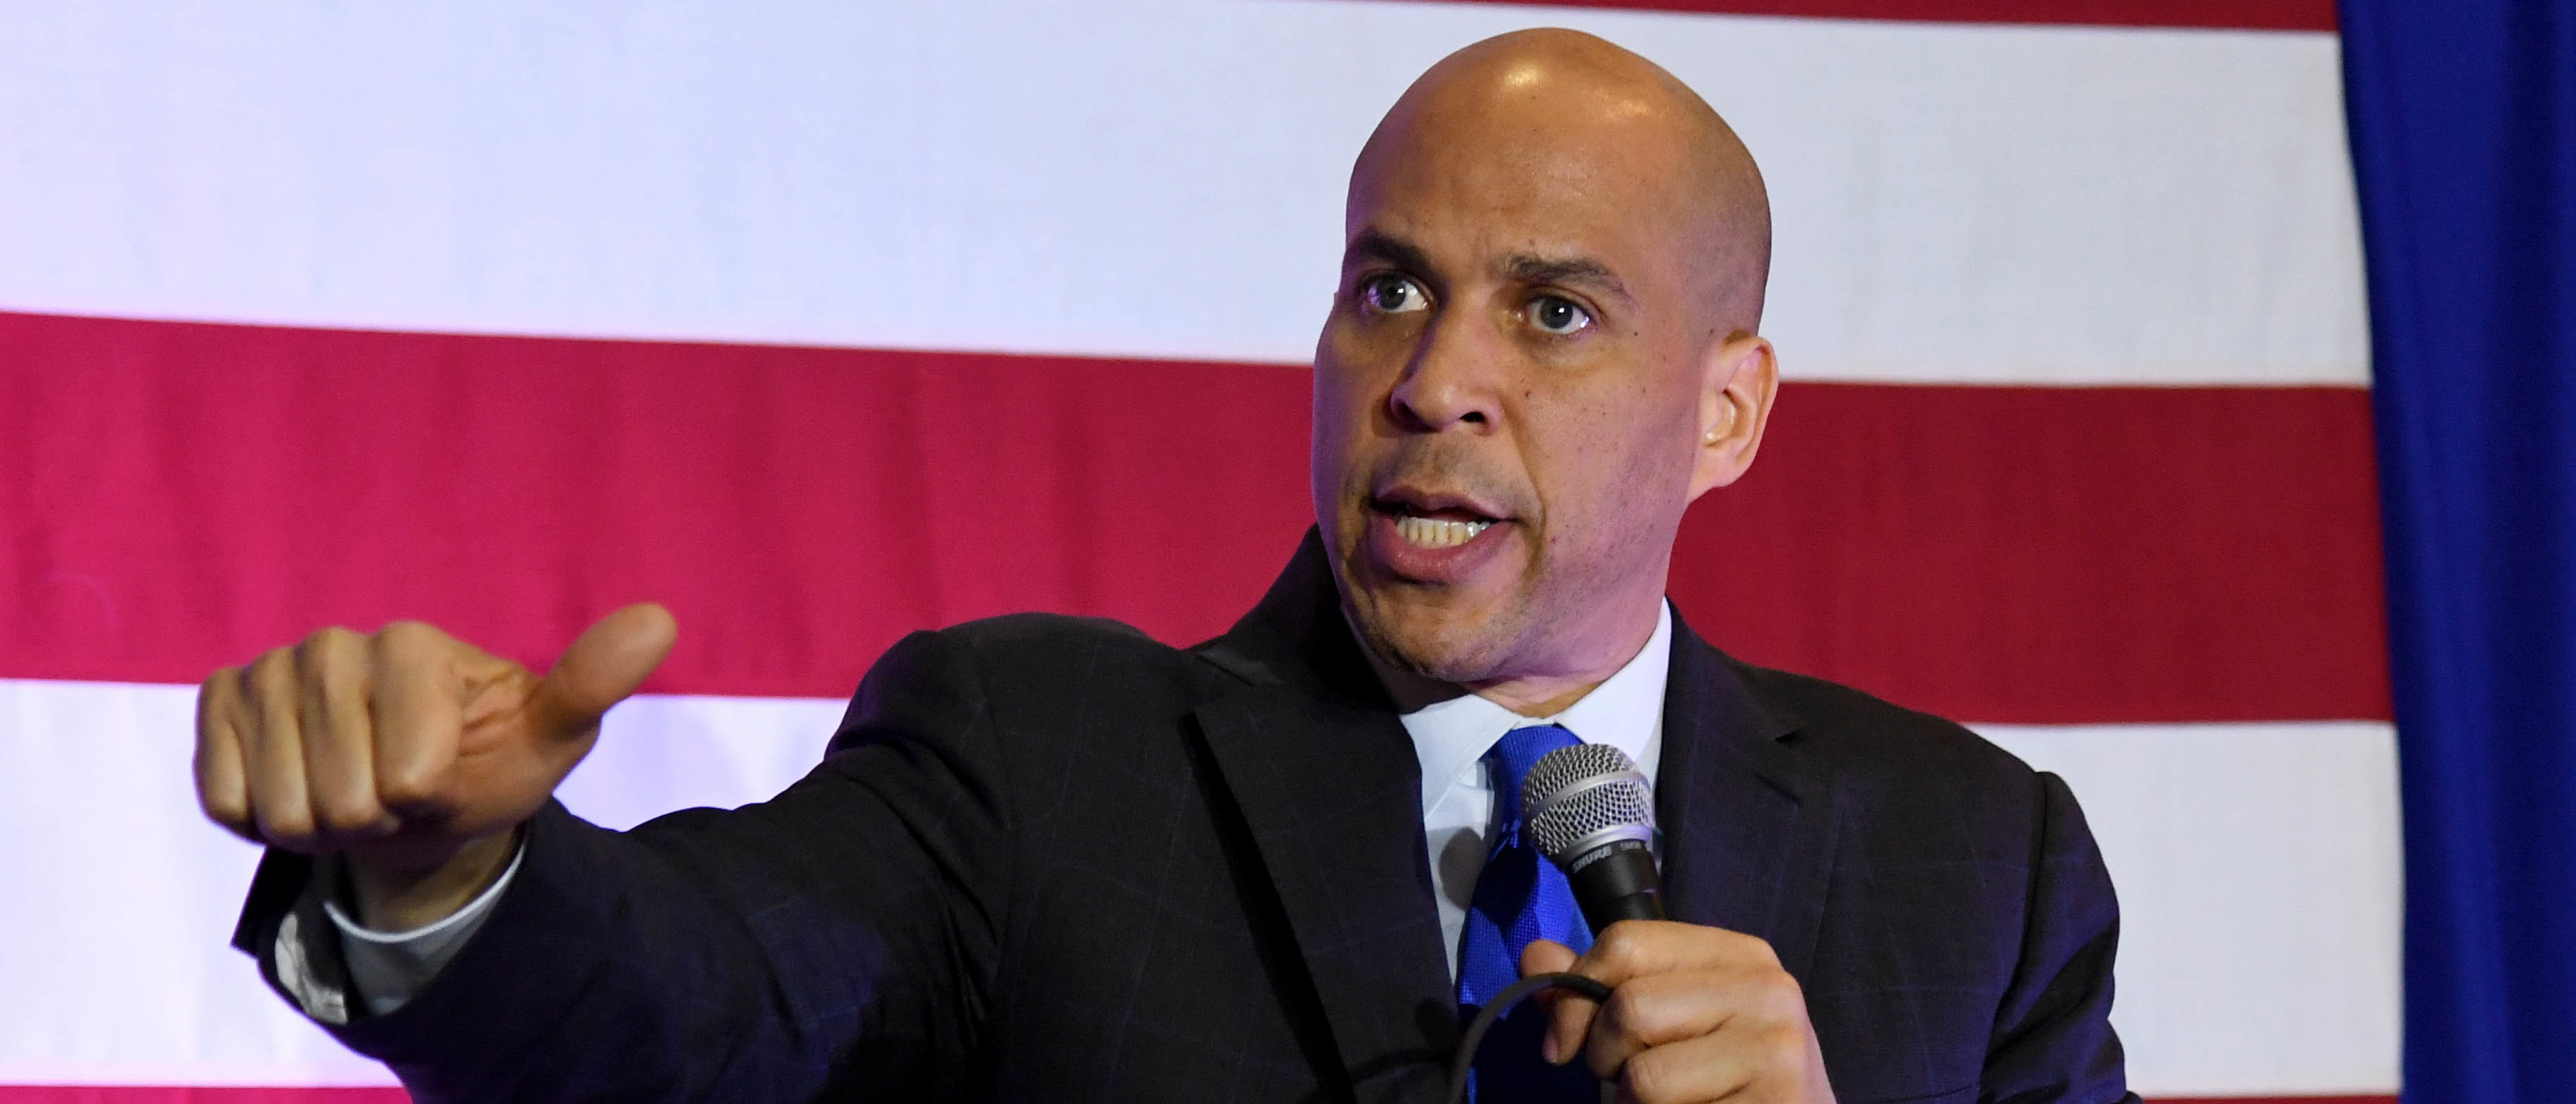 """U.S. Sen. Cory Booker (D-NJ) speaks at his """"Conversation with Cory"""" campaign event at the Nevada Partners Event Center on February 24, 2019 in North Las Vegas, Nevada. Booker is campaigning for the 2020 Democratic nomination for president. (Photo by Ethan Miller/Getty Images)"""